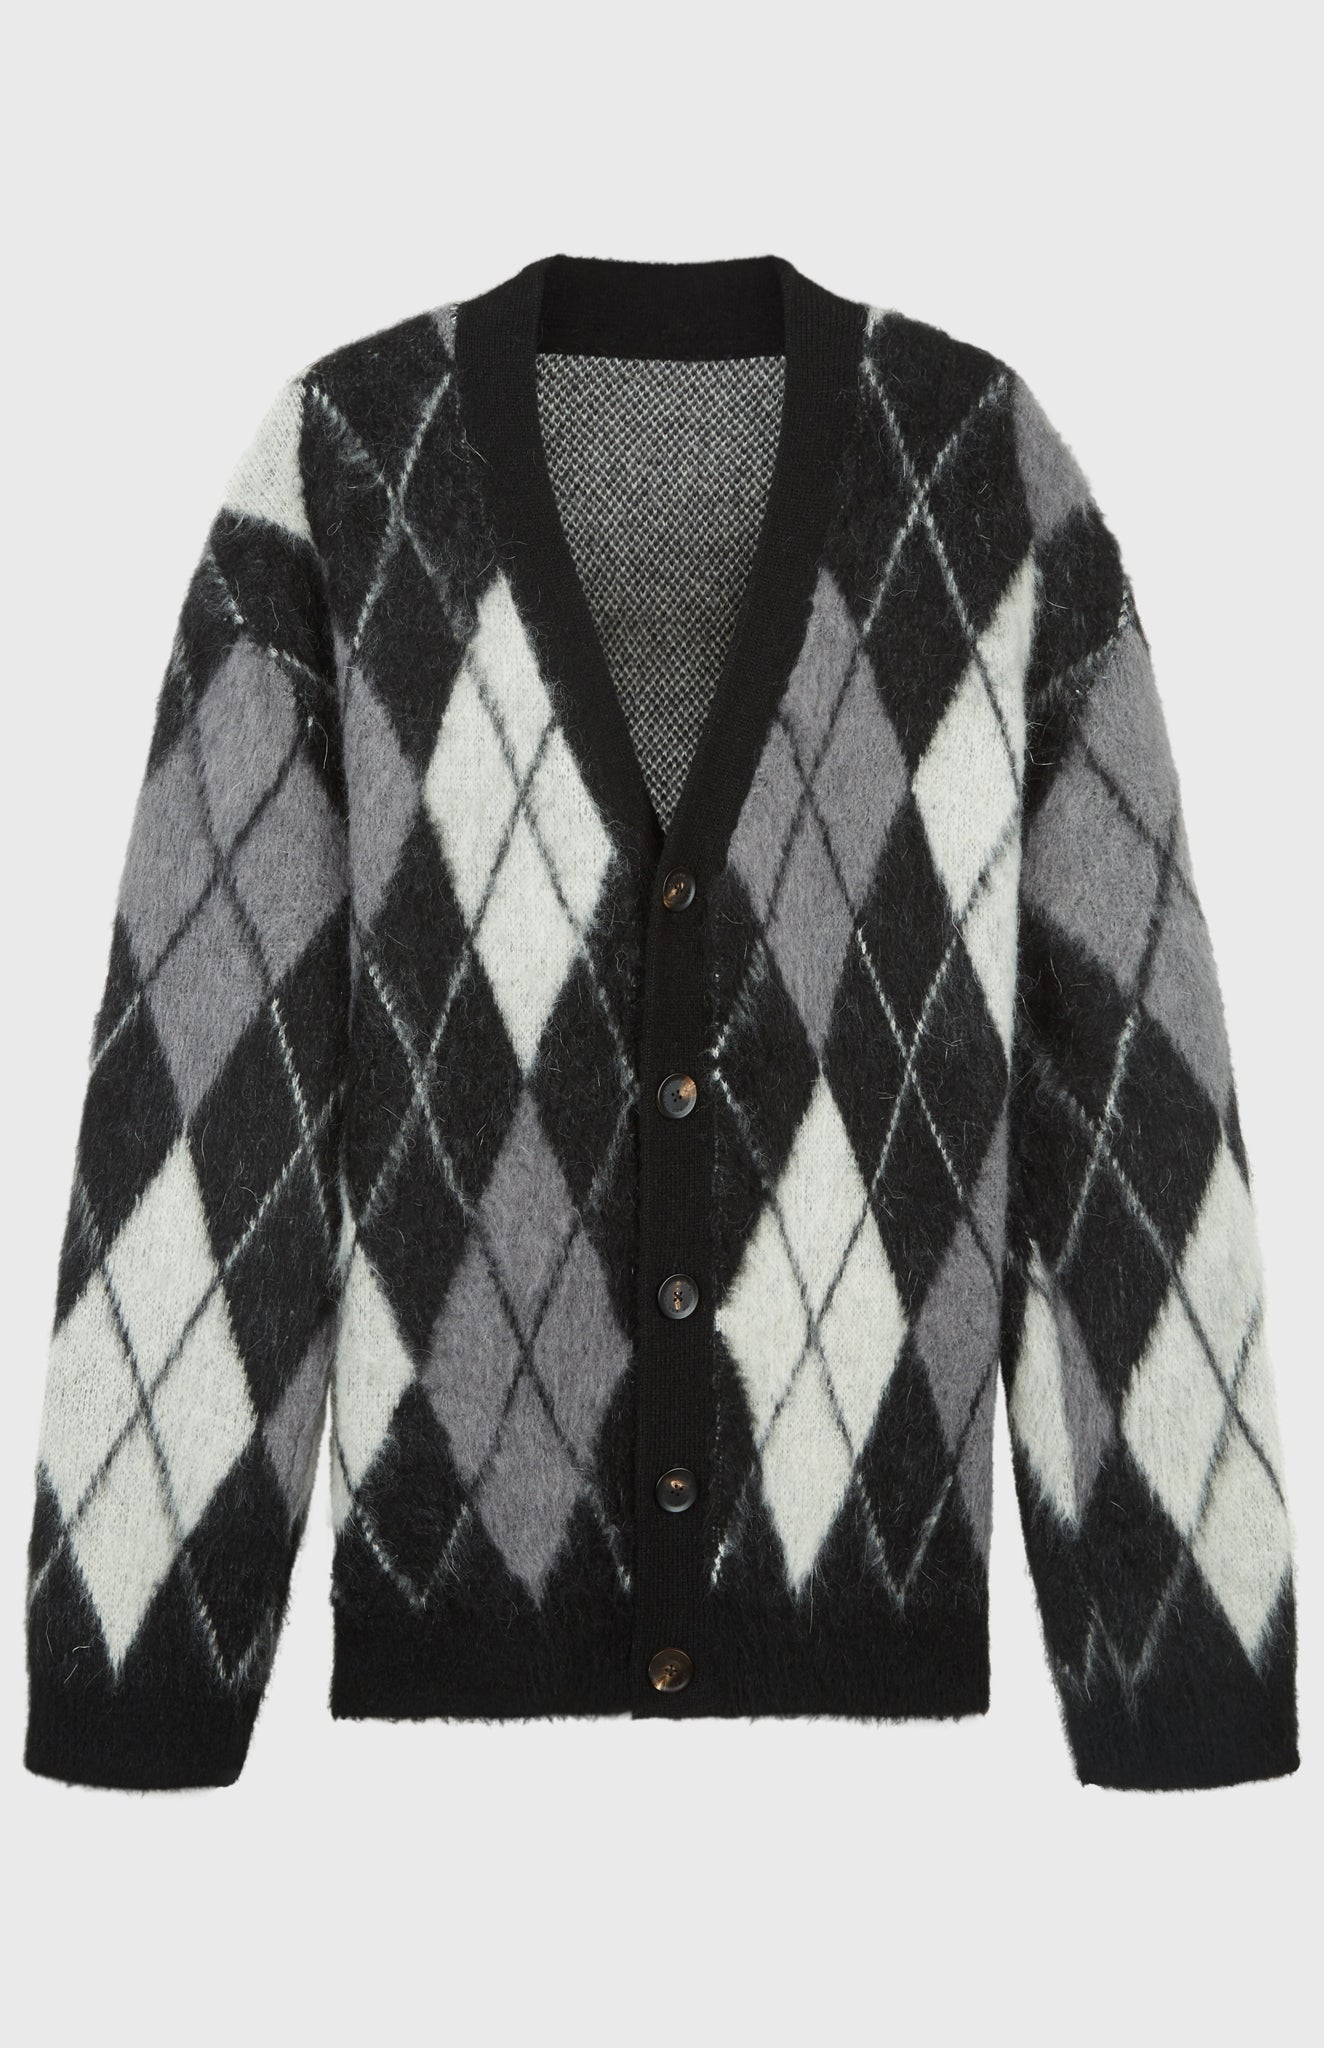 Pringle Reissued Unisex Monochrome Argyle Cardigan